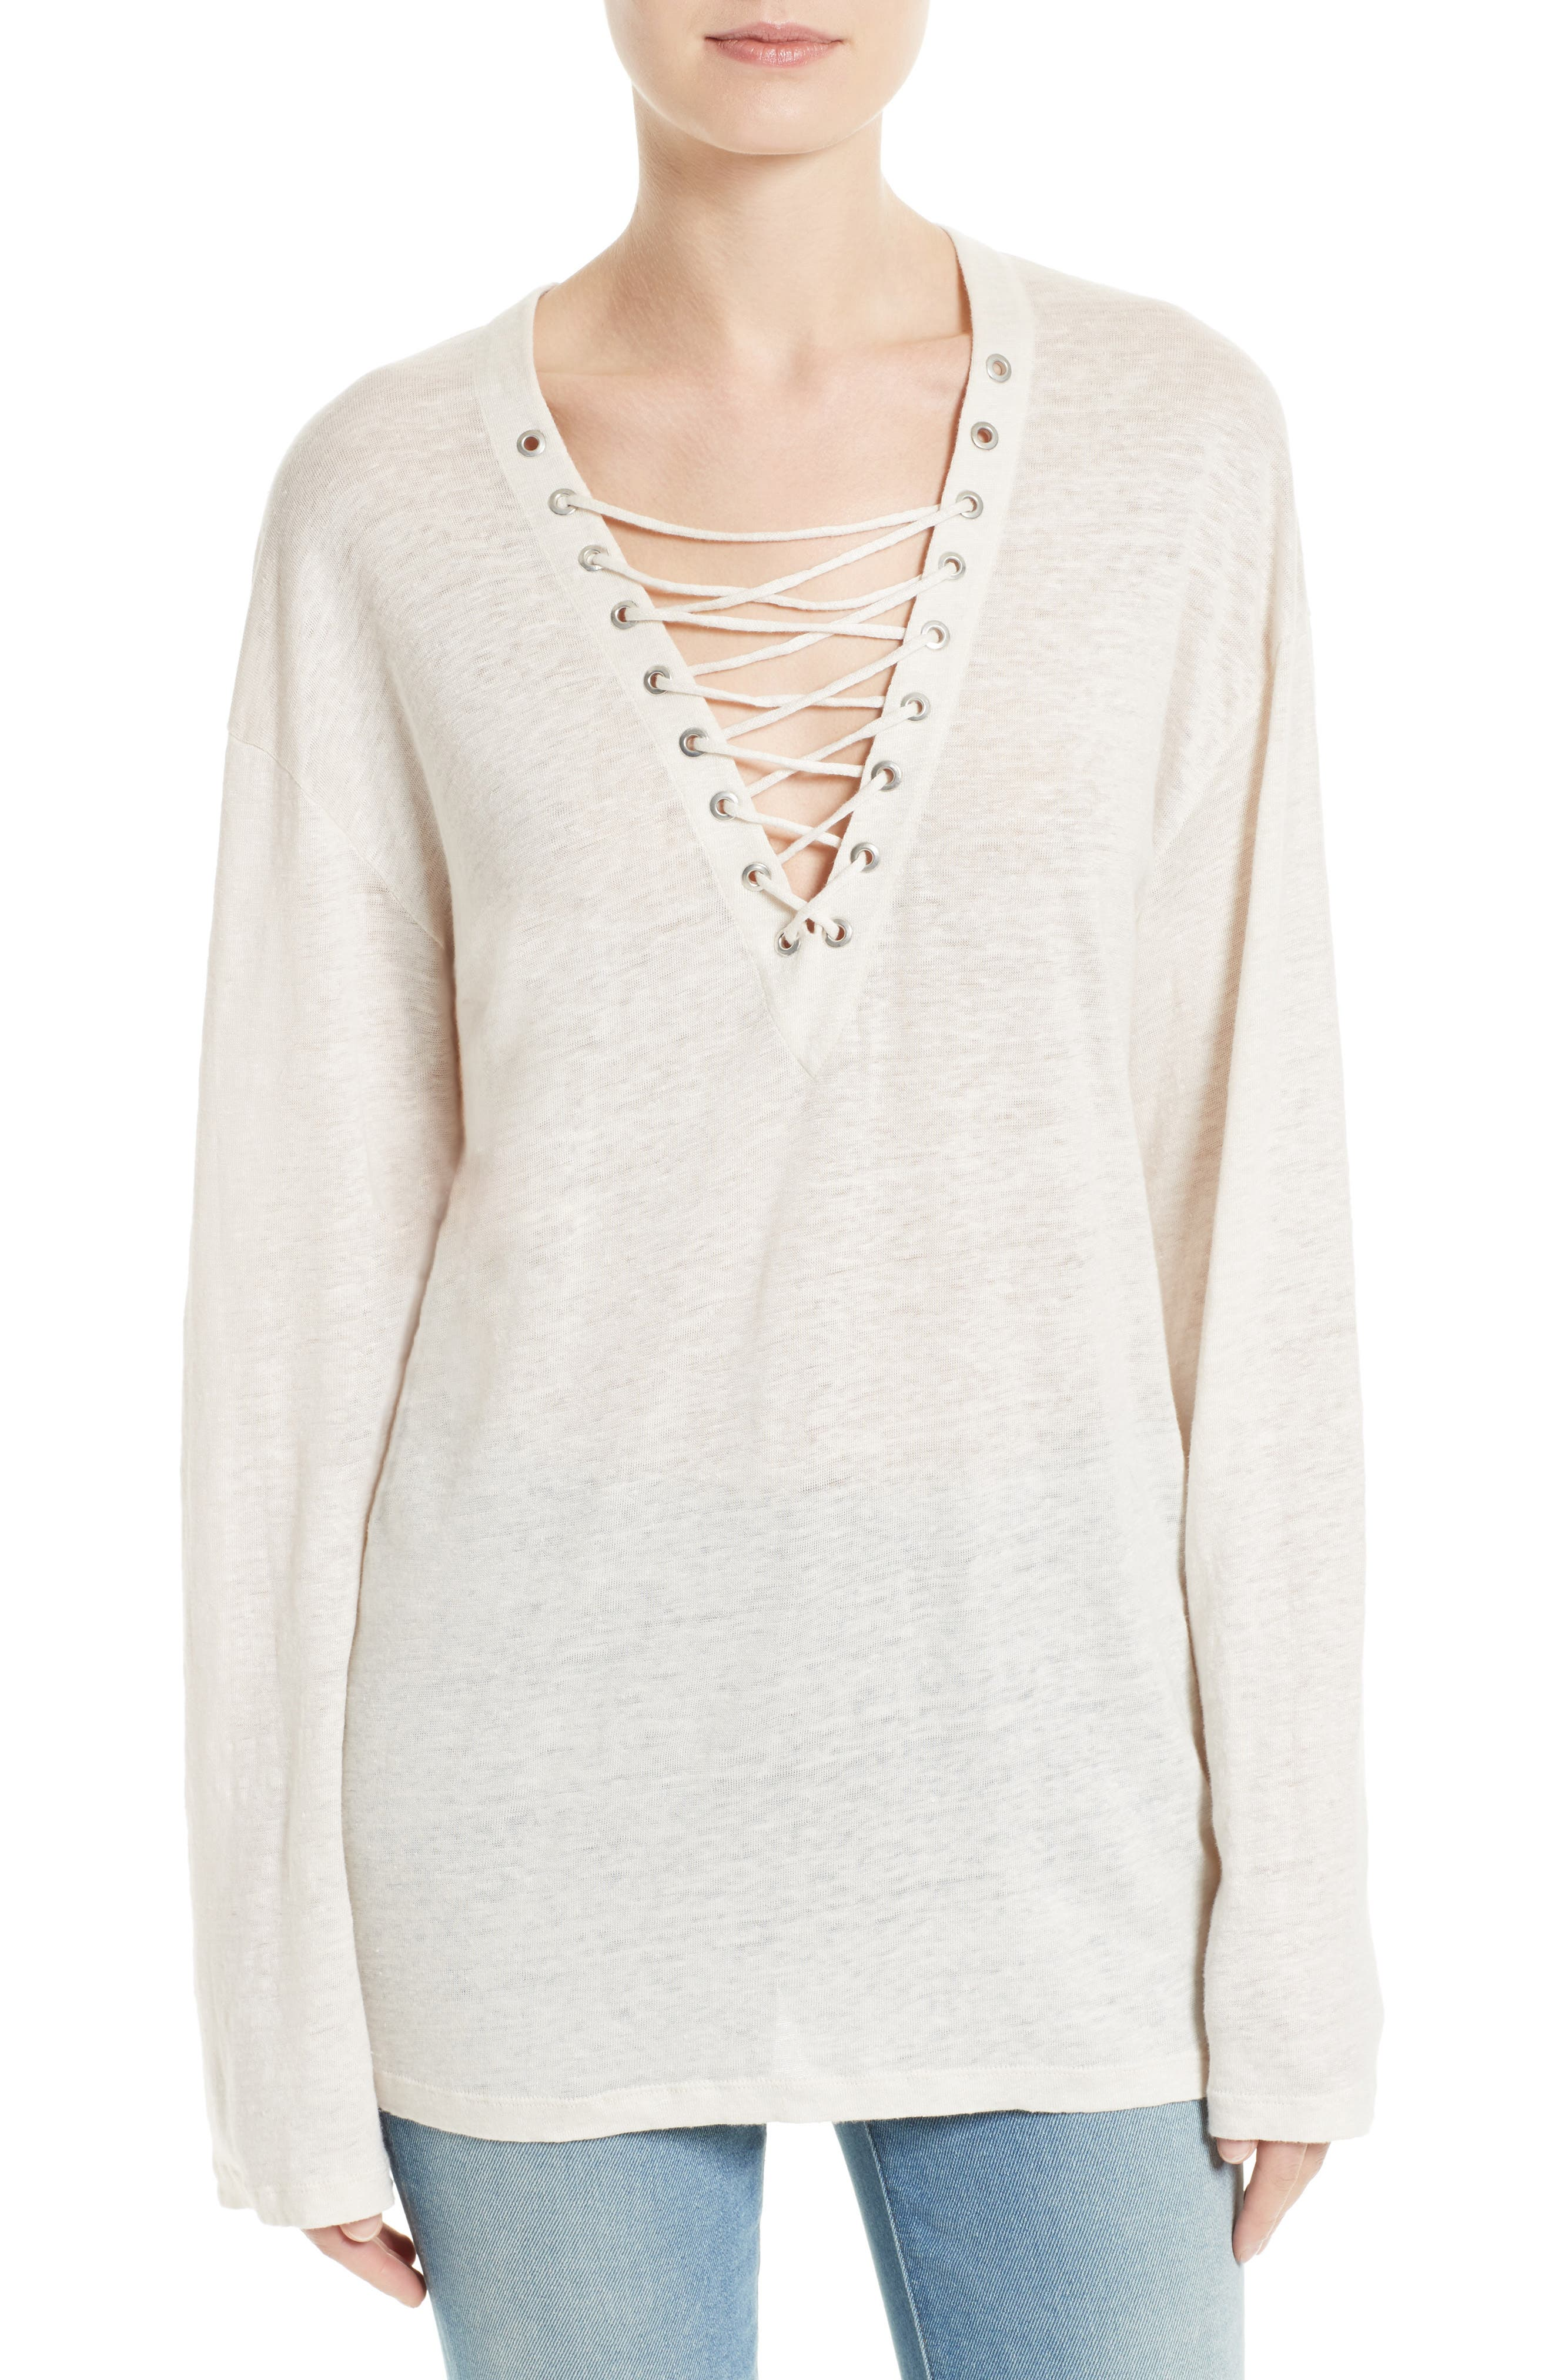 Alety Lace-Up Linen Top,                         Main,                         color, Ivory